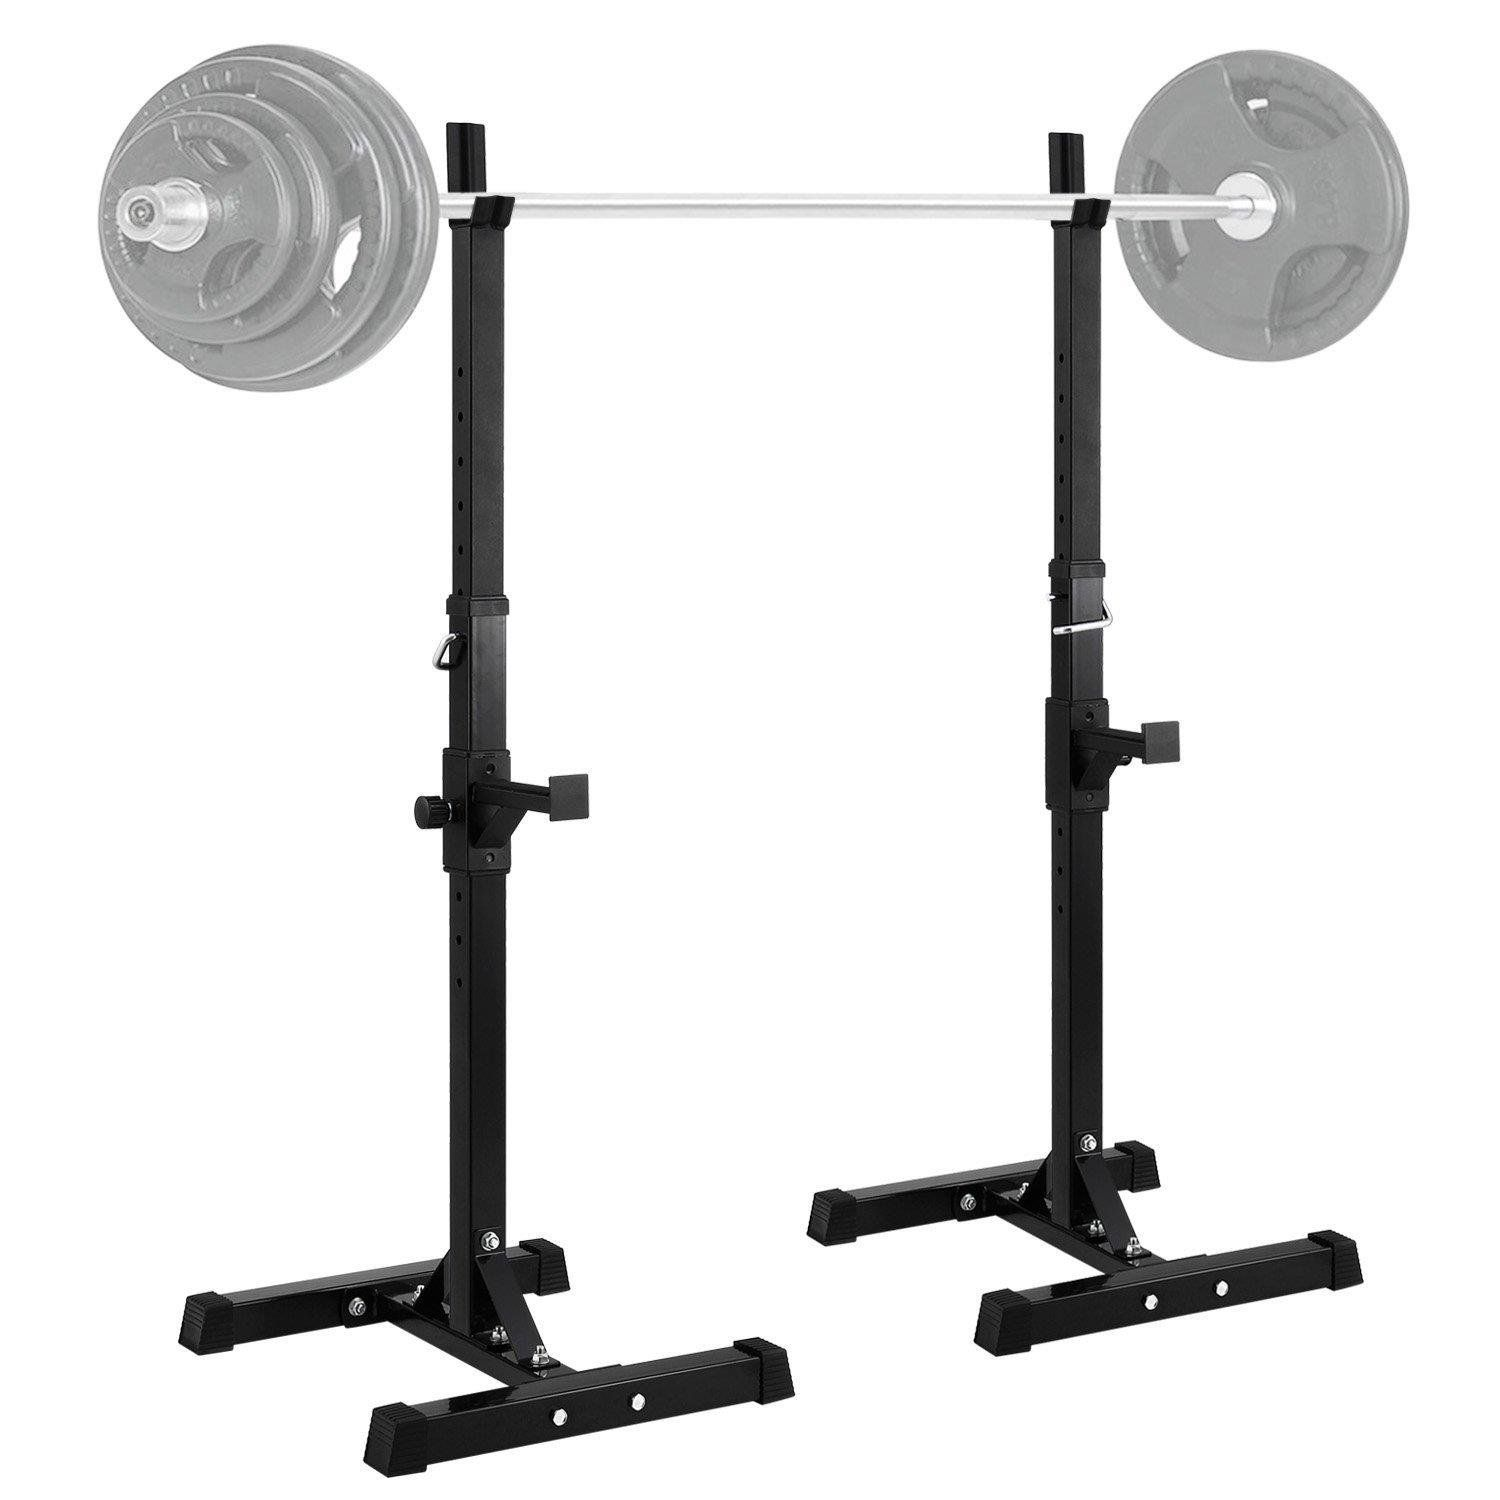 Ktaxon Pair Of Standard Solid Barbell Bench Adjustable Steel Squat Rack Stands For Gym Workout Exercise Walmart Com In 2020 Squat Rack No Equipment Workout Family Fitness